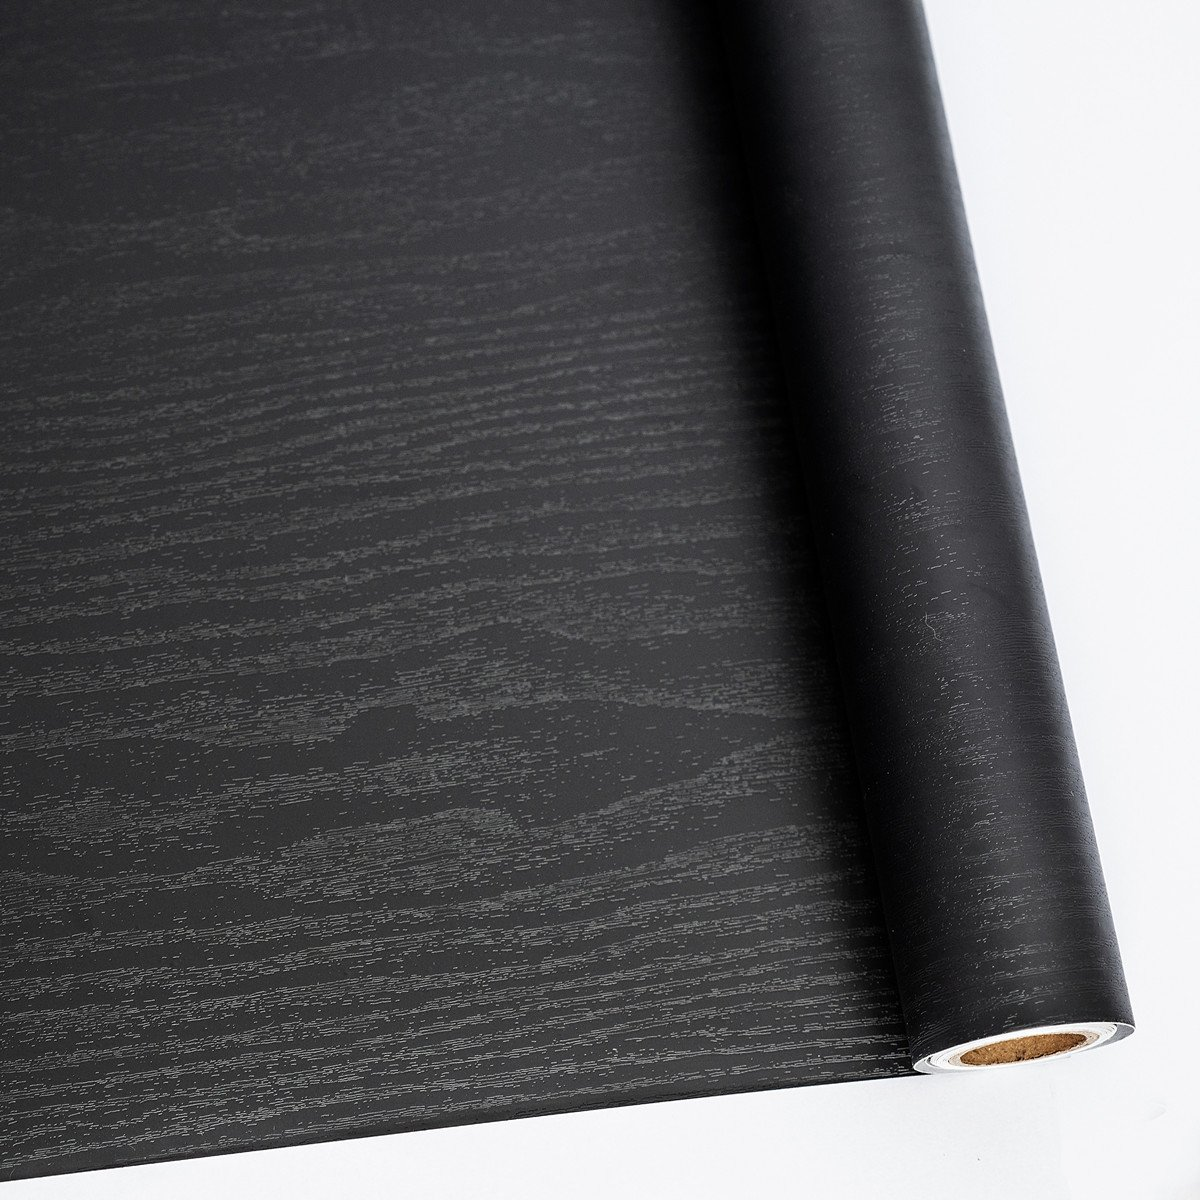 Abyssaly 24'' X 118'' Black Wood Contact Paper Decorative Self-Adhesive Film Furniture Real Wood Tactile Sensation Surfaces Easy to Clean